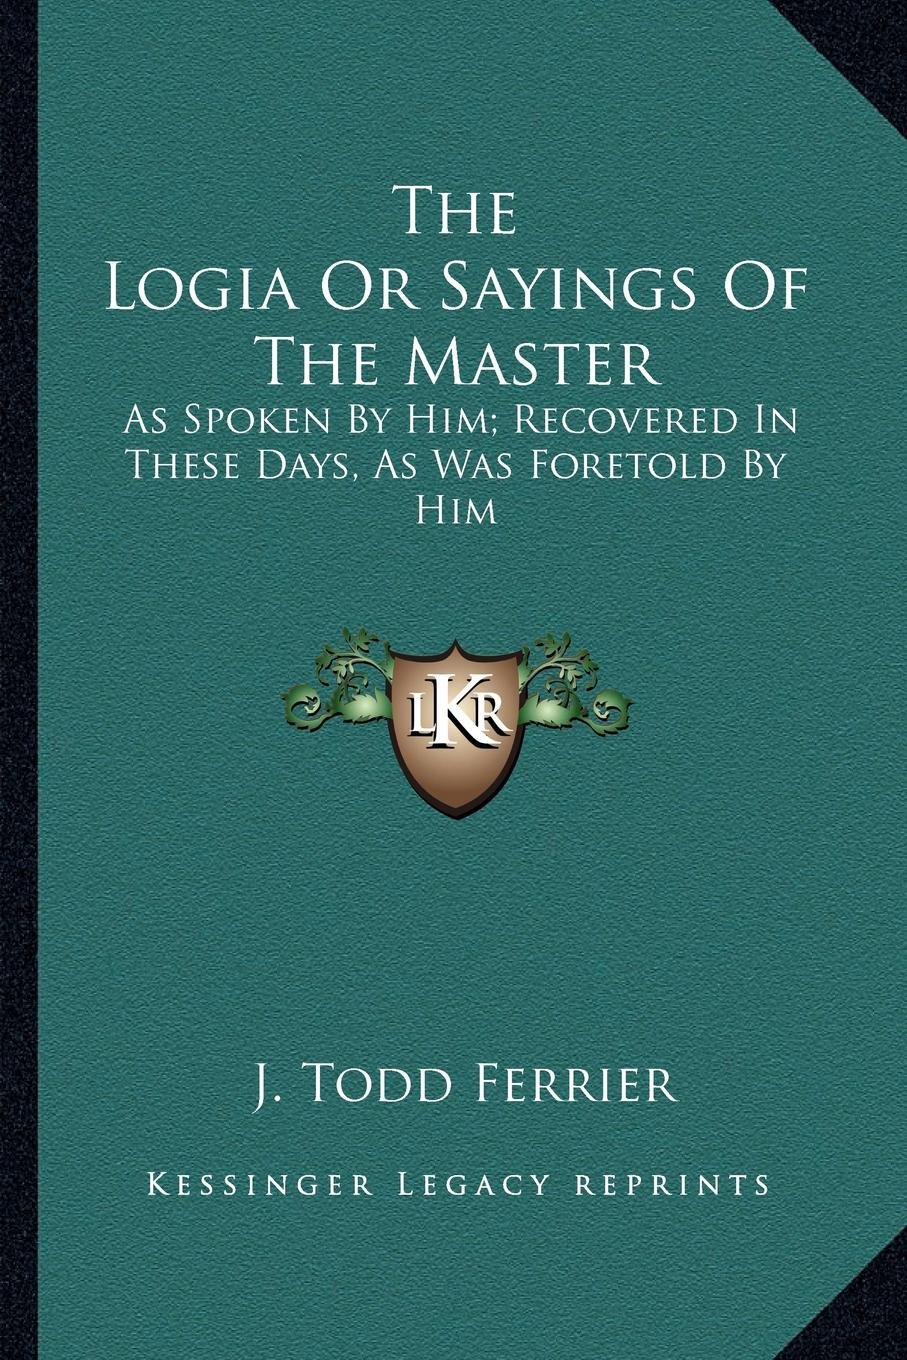 The Logia Or Sayings Of The Master: As Spoken By Him; Recovered In These Days, As Was Foretold By Him pdf epub